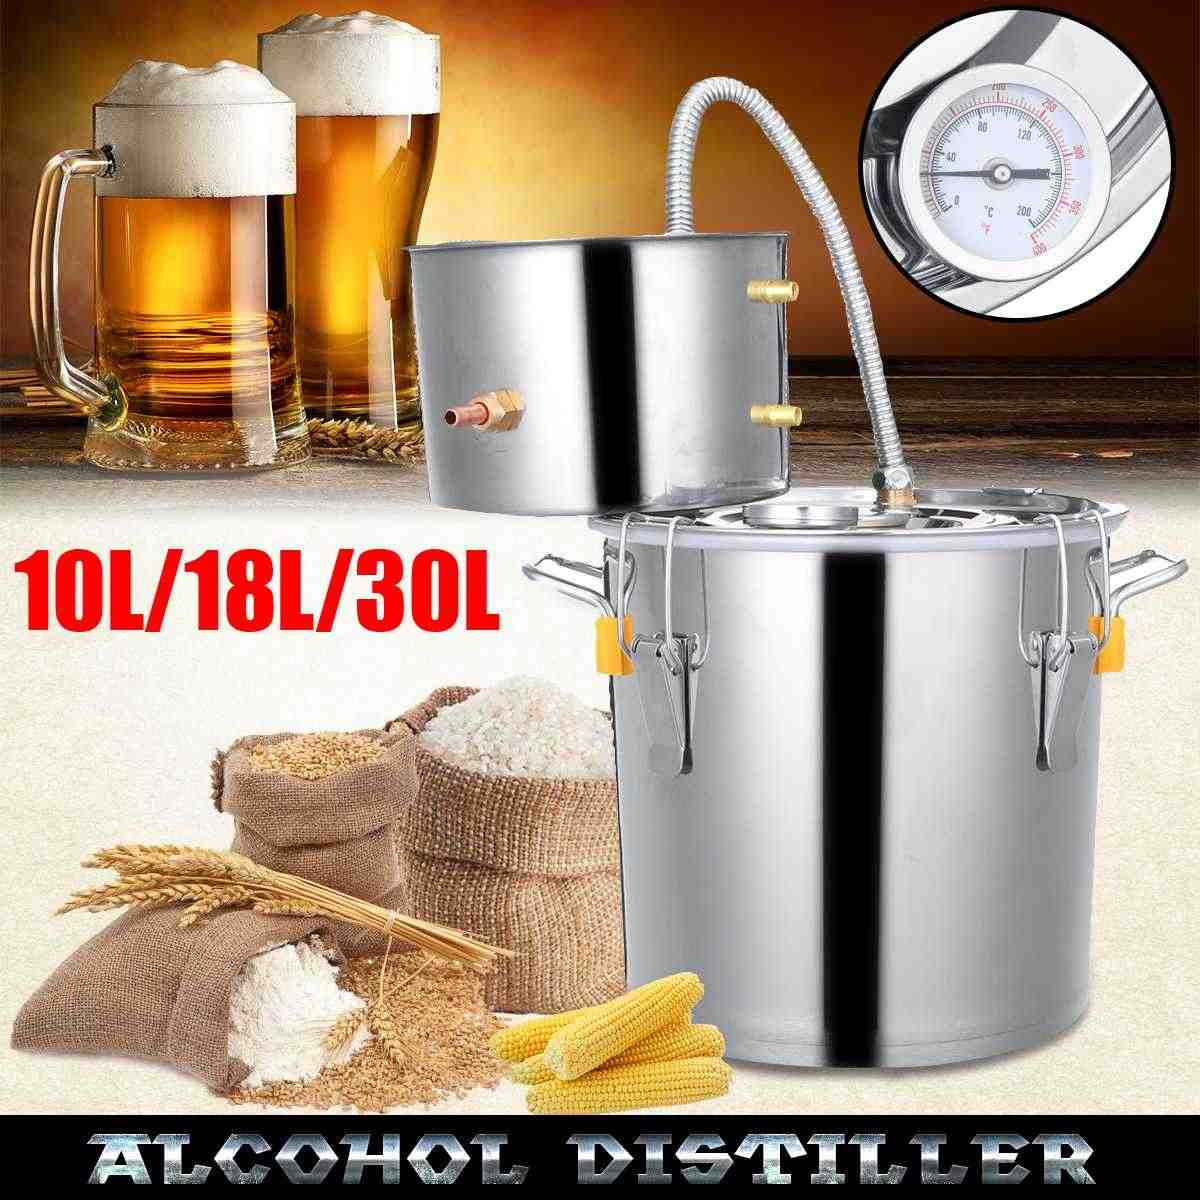 10L/18L/30L Wine Beer Alcohol Distiller Moonshine Alcohol Home DIY Brewing Kit  Home Distiller Stainless Distiller Equipment